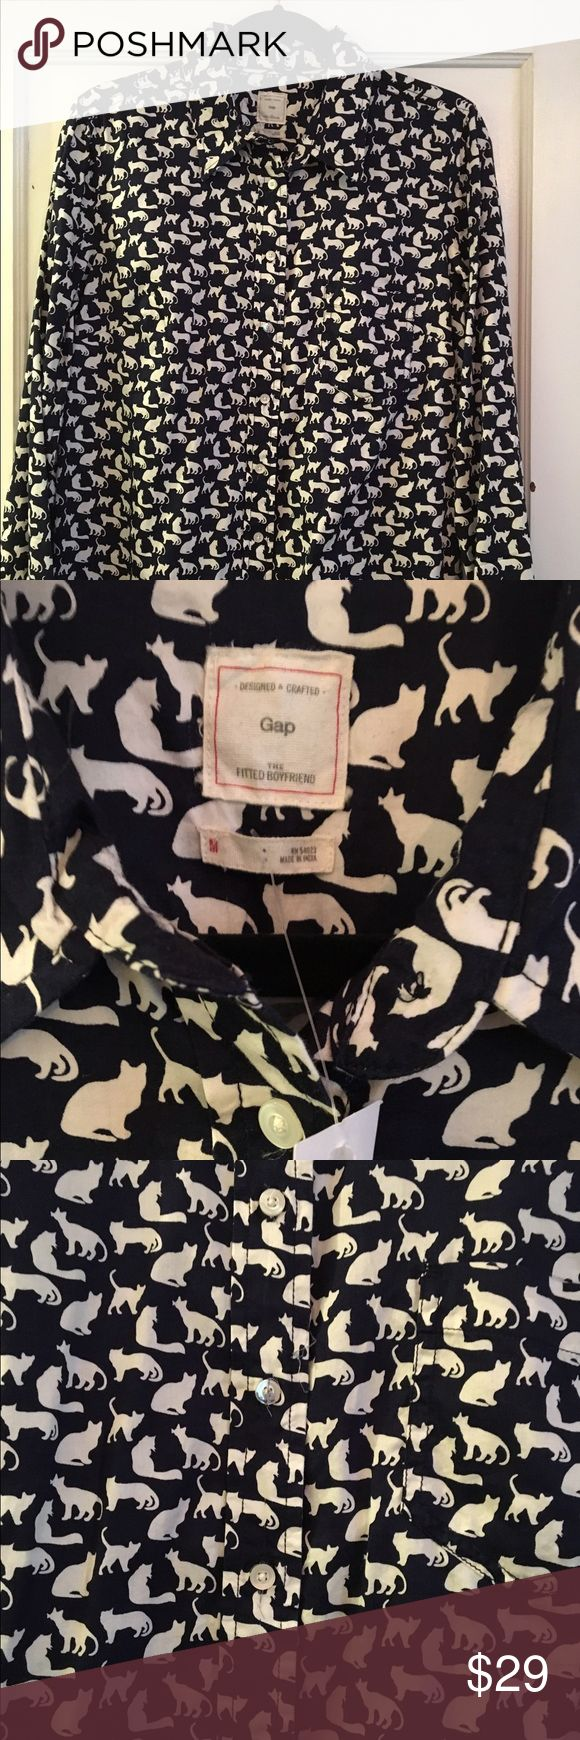 """GAP """"Fitted Boyfriend"""" Shirt - KITTEHS!!! CALLING ALL CAT LADIES: you need this shirt in your life. 100% cotton, Gap """"fitted boyfriend"""" cut (longer and a bit boxier than traditional women's cut). Cream colored cat silhouettes on deep navy background. Would look fresh over a tank top with cutoffs and white sneakers! New with tags, never worn. Discontinued, hard to find pattern...better pounce soon! GAP Tops Button Down Shirts"""